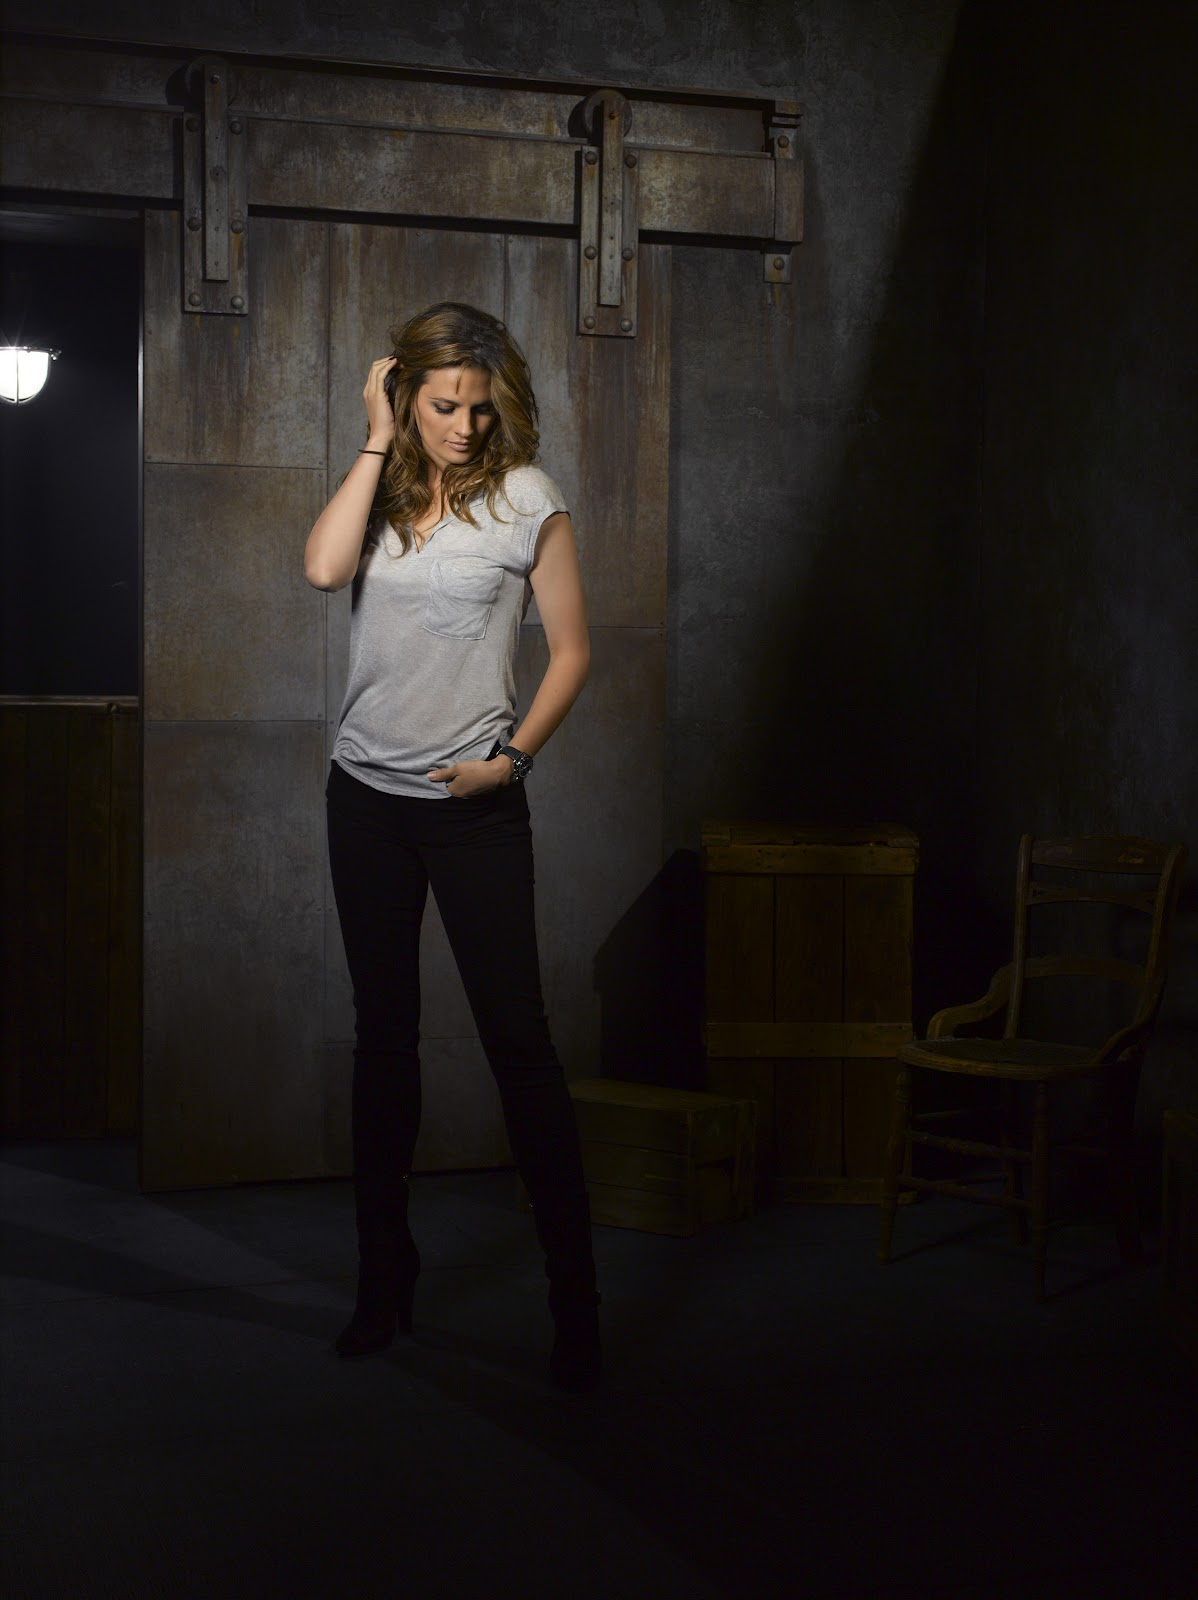 Stana Katic hot images Castle Season 5 - Wallpapers For ...